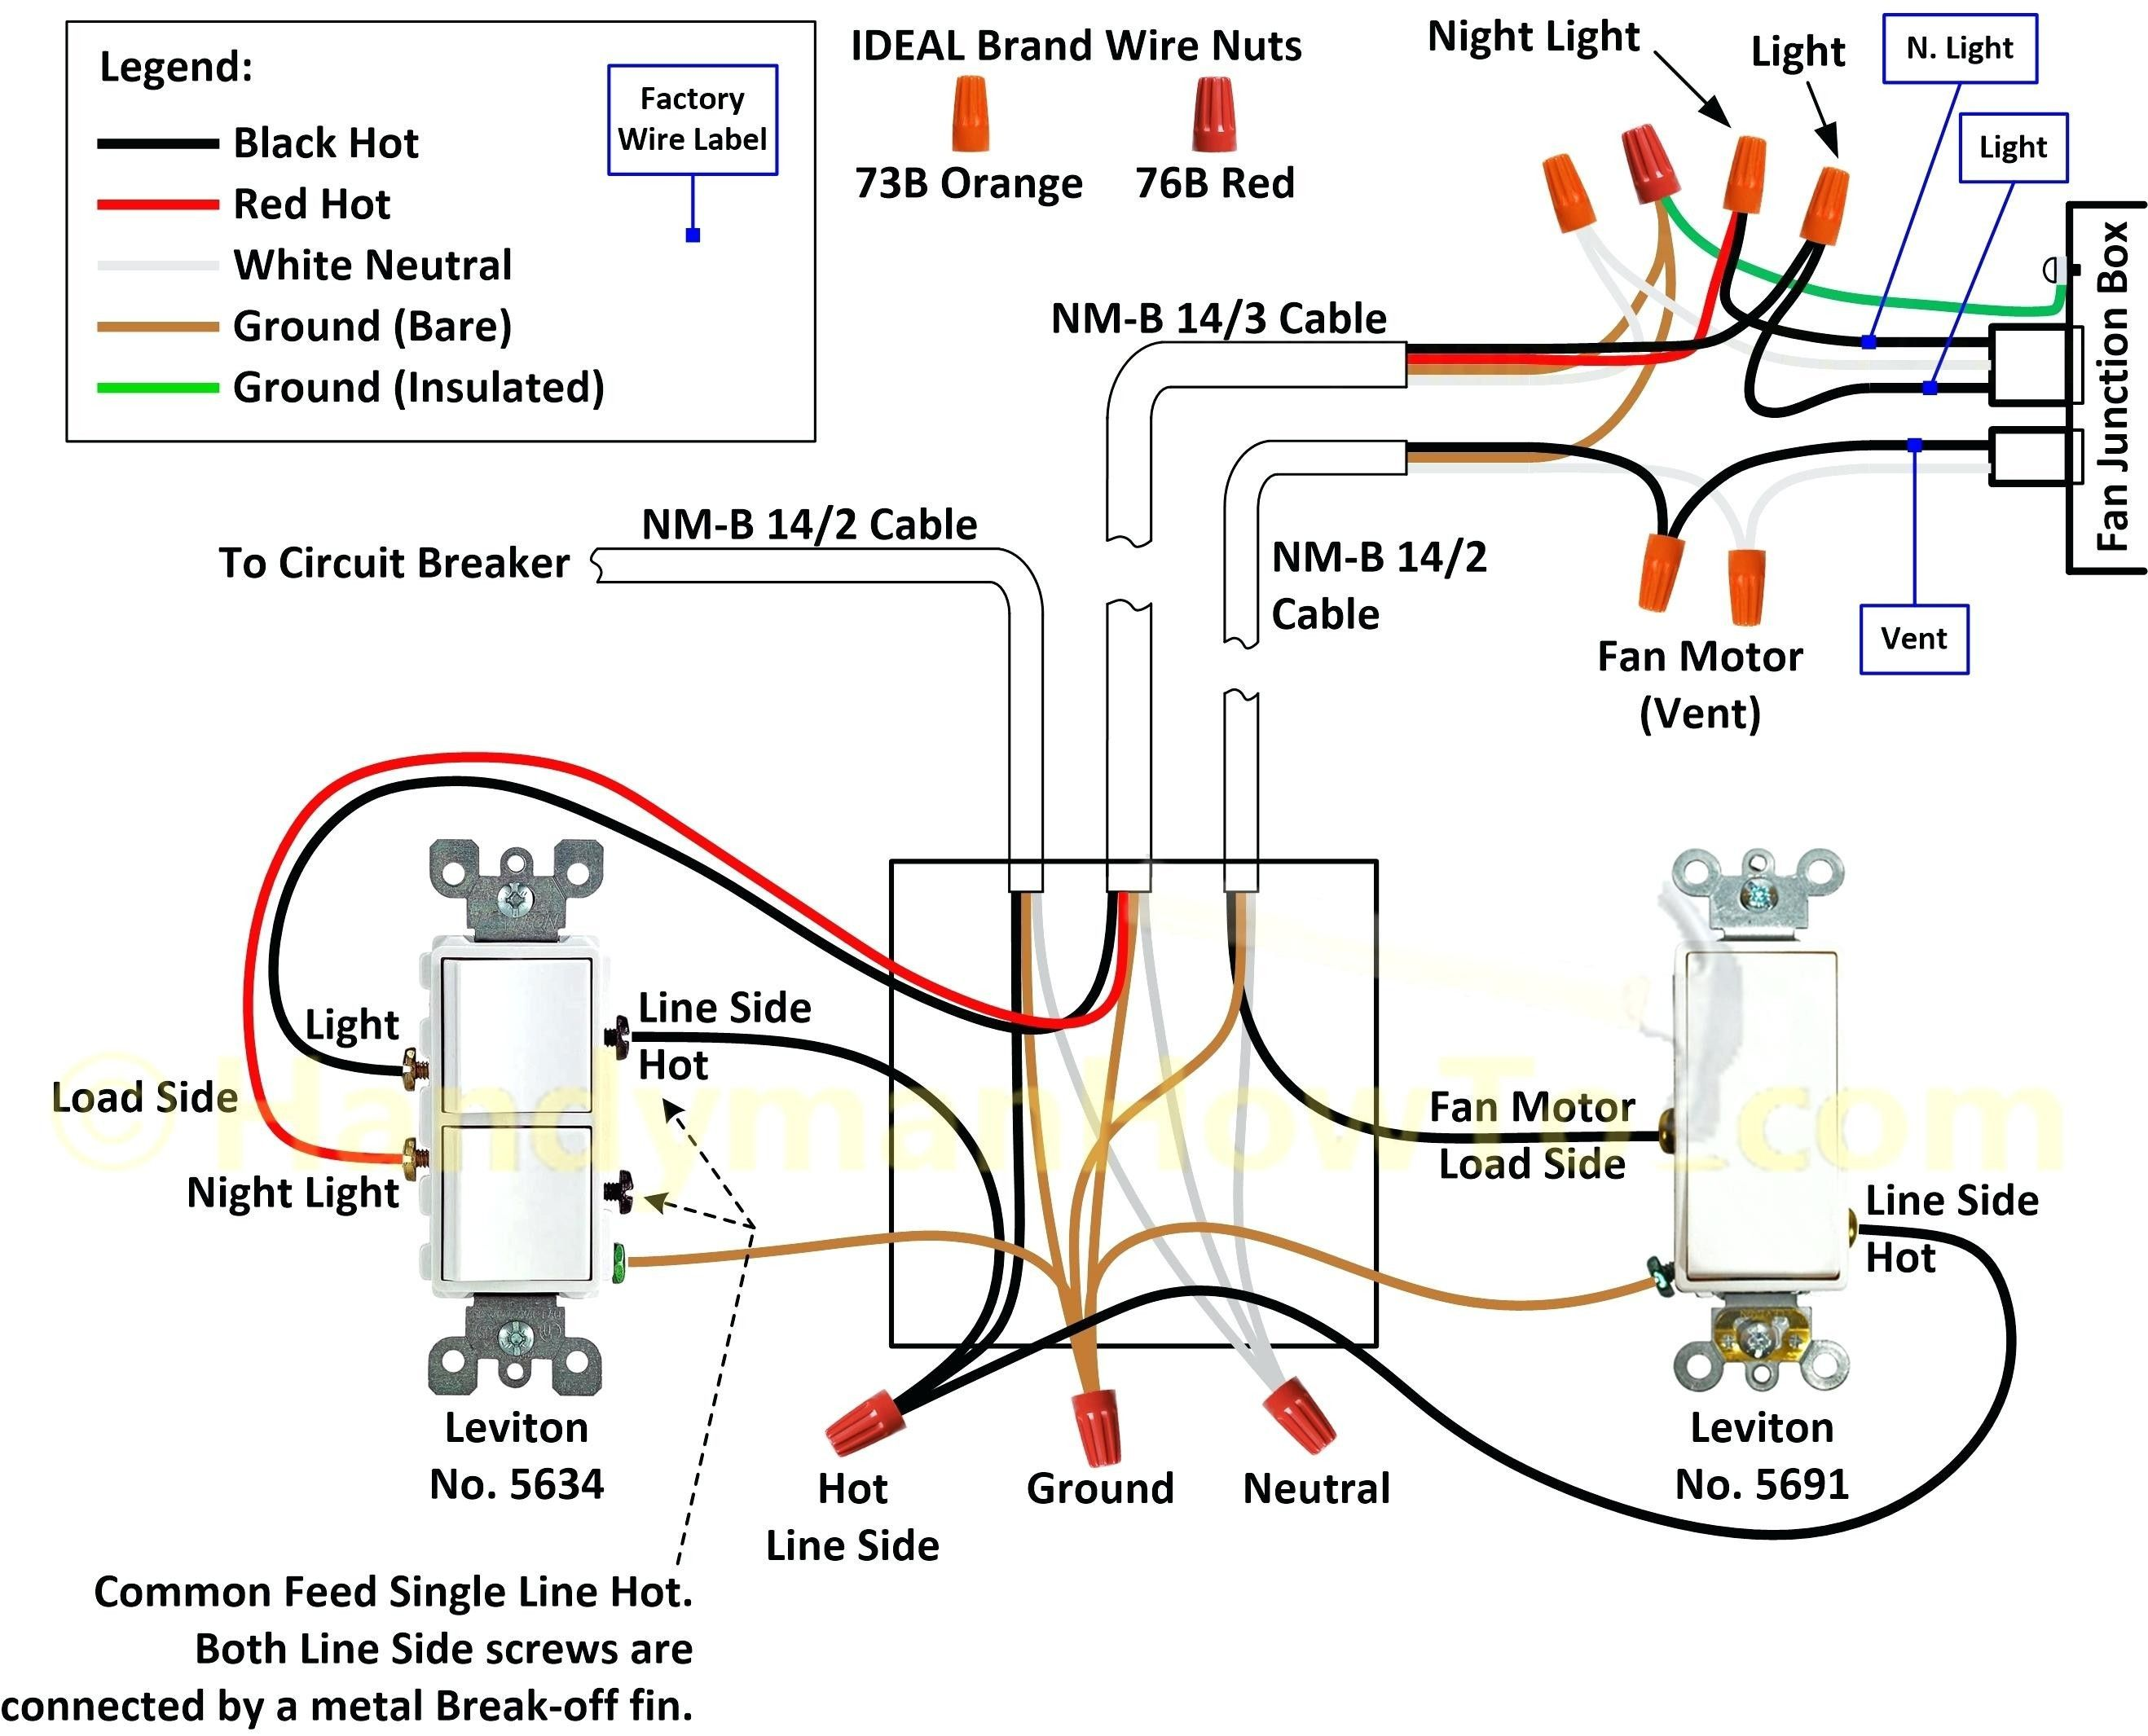 Diagrams Digramssample Diagramimages Wiringdiagramsample Wiringdiagram Check More At Https Nostoc Co Light Switch Wiring Ceiling Fan Wiring Bathroom Fan